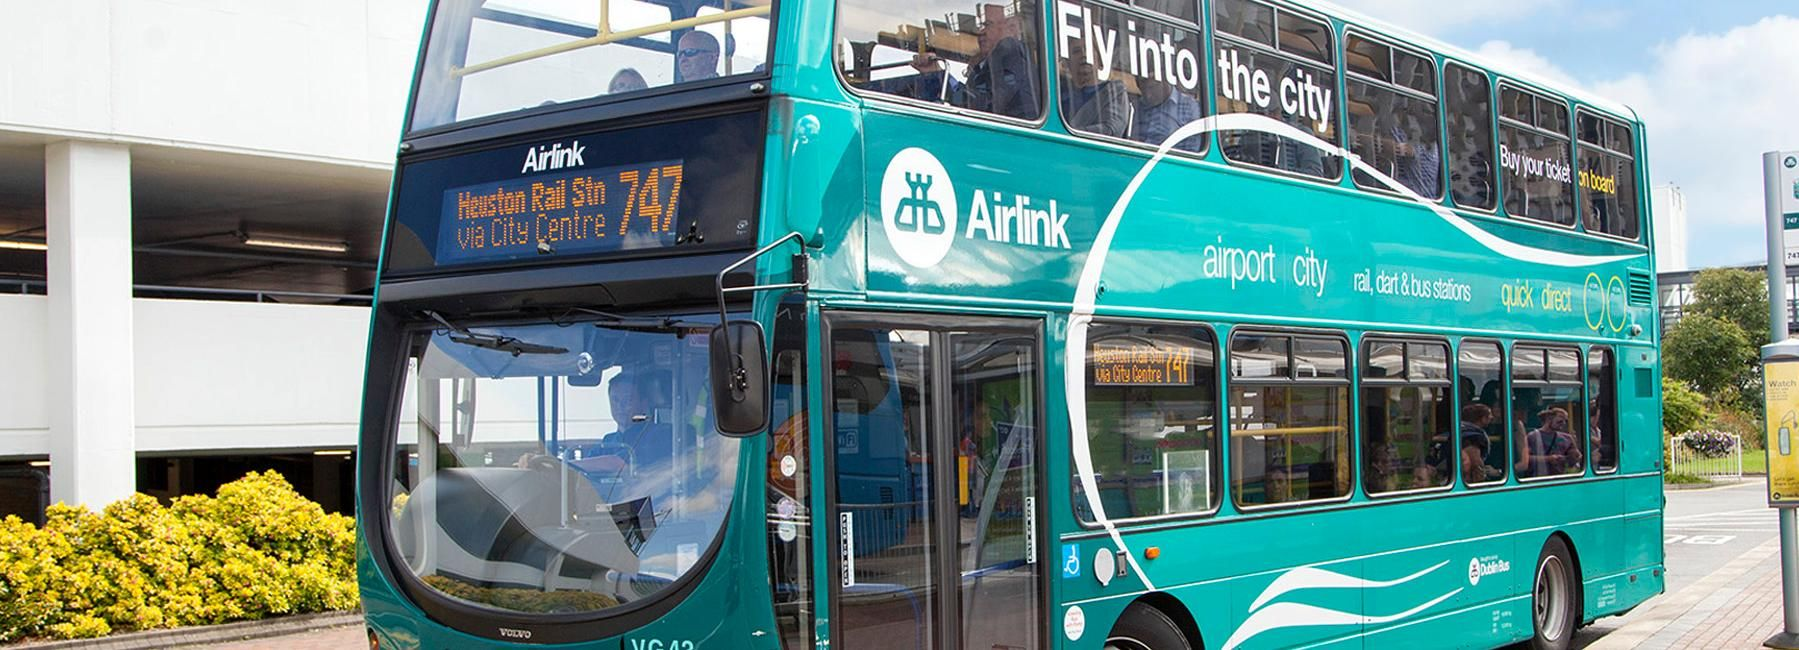 Dublino: transfer sul bus Airport Express Airlink